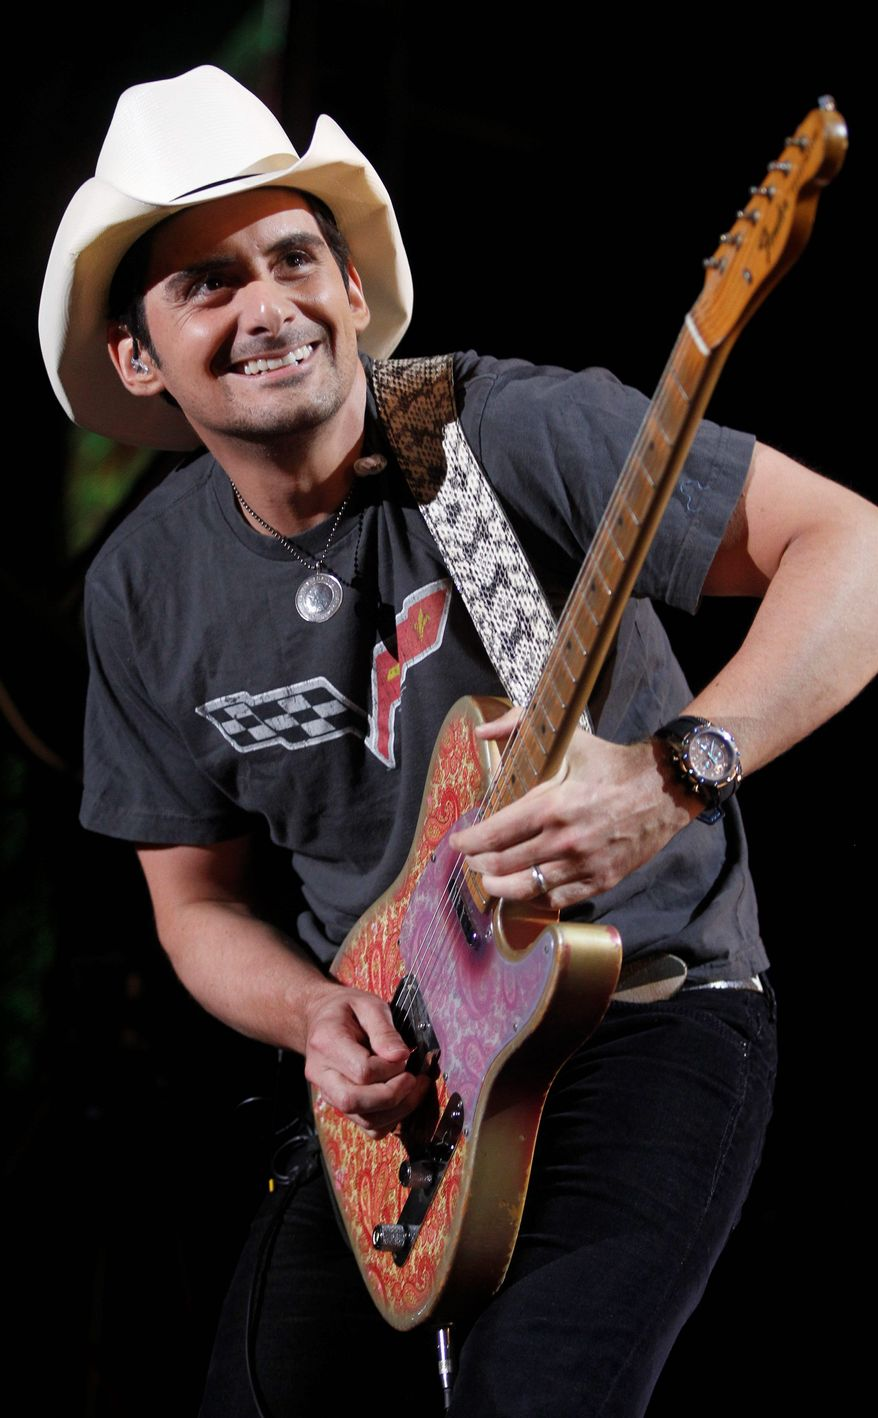 """FILE - In this June 9, 2011 file photo, Brad Paisley performs during the CMA Fan Festival in Nashville, Tenn. Paisley is releasing his first book on Nov. 1 called """"Diary of a Player"""". (AP Photo/Wade Payne, file)"""